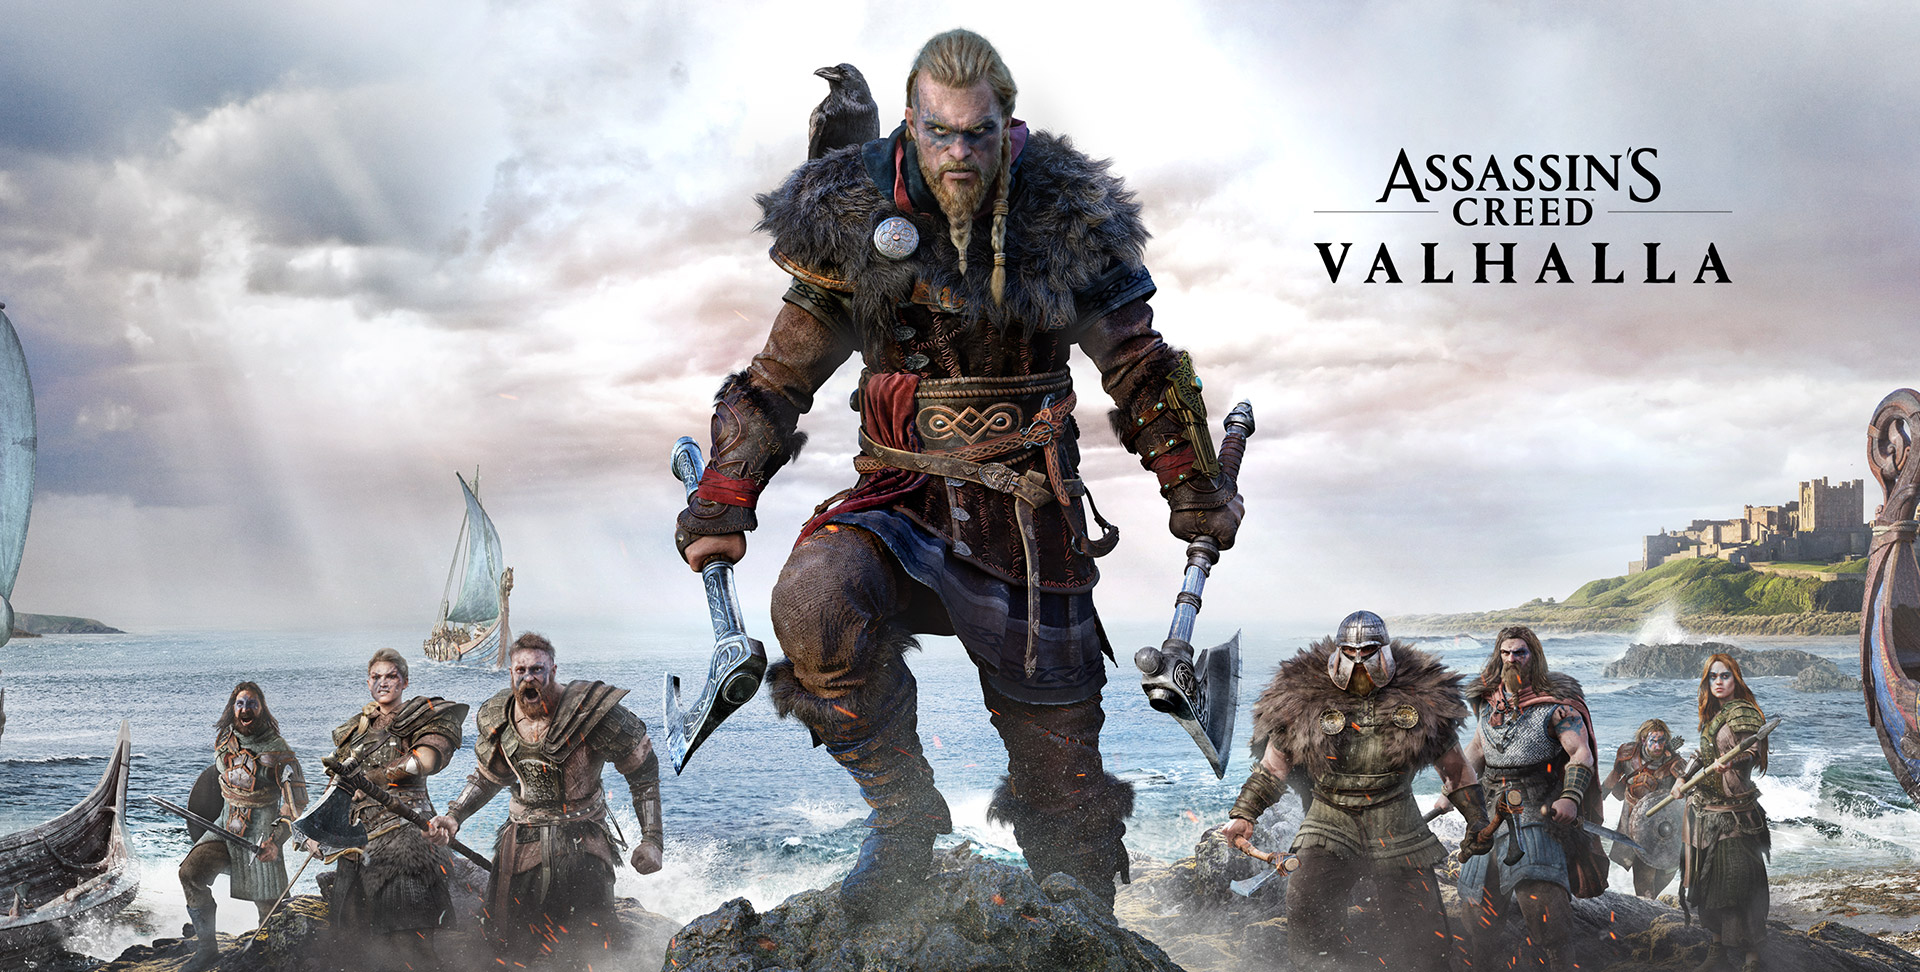 Welcome to the Viking Age